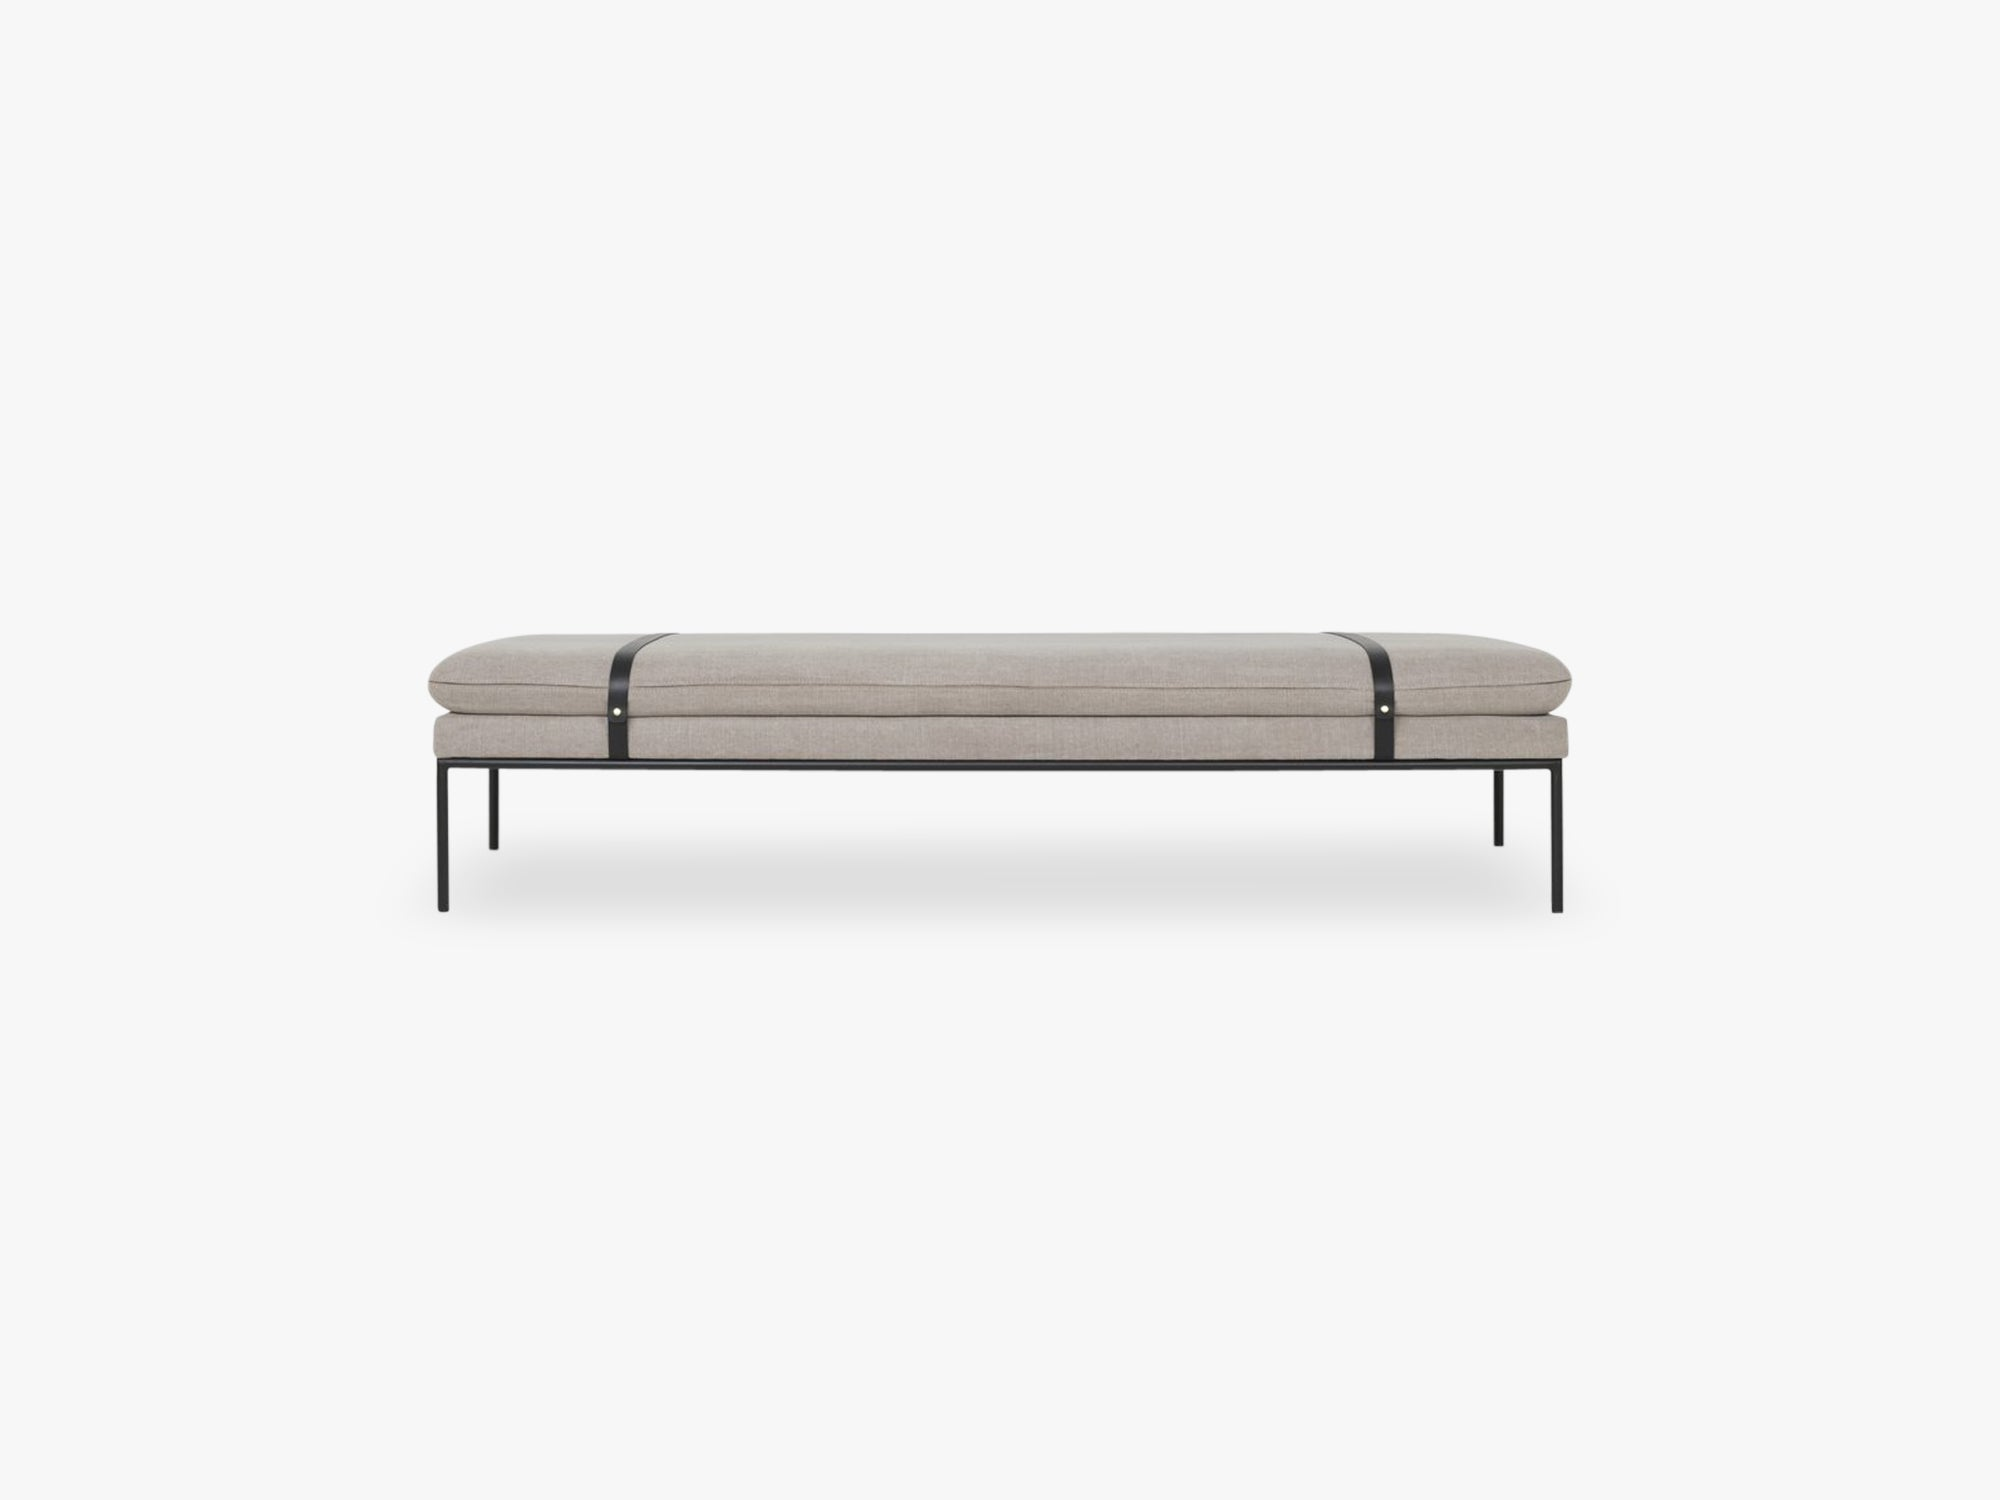 Turn Daybed, Cotton Linen fra Ferm Living